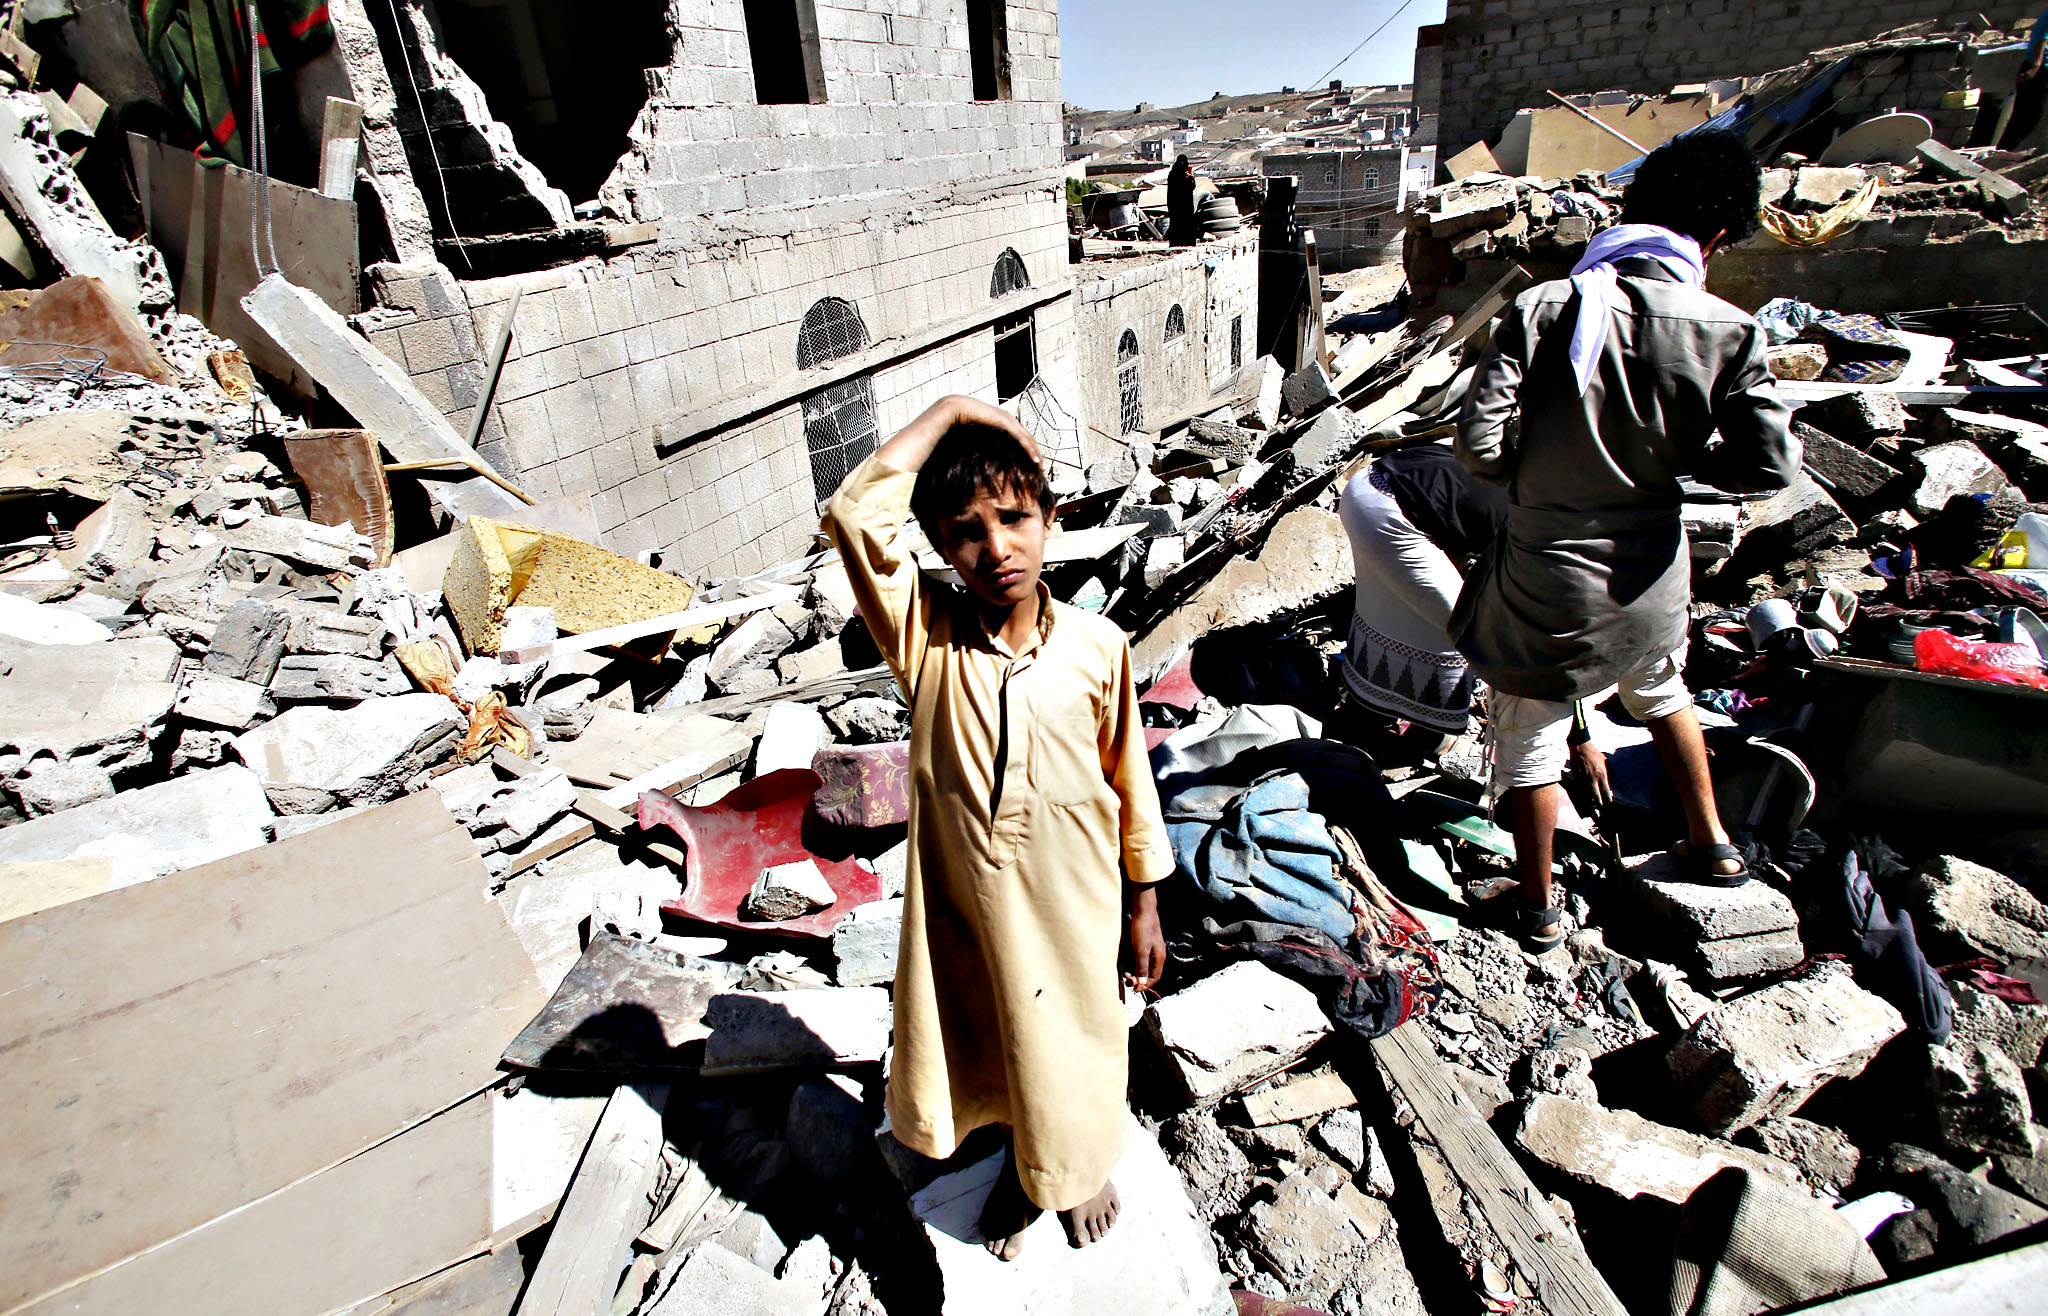 A boy stands in rubble from houses destroyed by Saudi-led airstrikes in Sanaa, Yemen, Friday, May 1, 2015. Saudi Arabia leads a coalition of mostly Sunni Arab countries conducting airstrikes against the rebels who have overrun the Yemeni capital, Sanaa, and forced the Western-backed president, Abed Rabbo Mansour Hadi, to flee the country